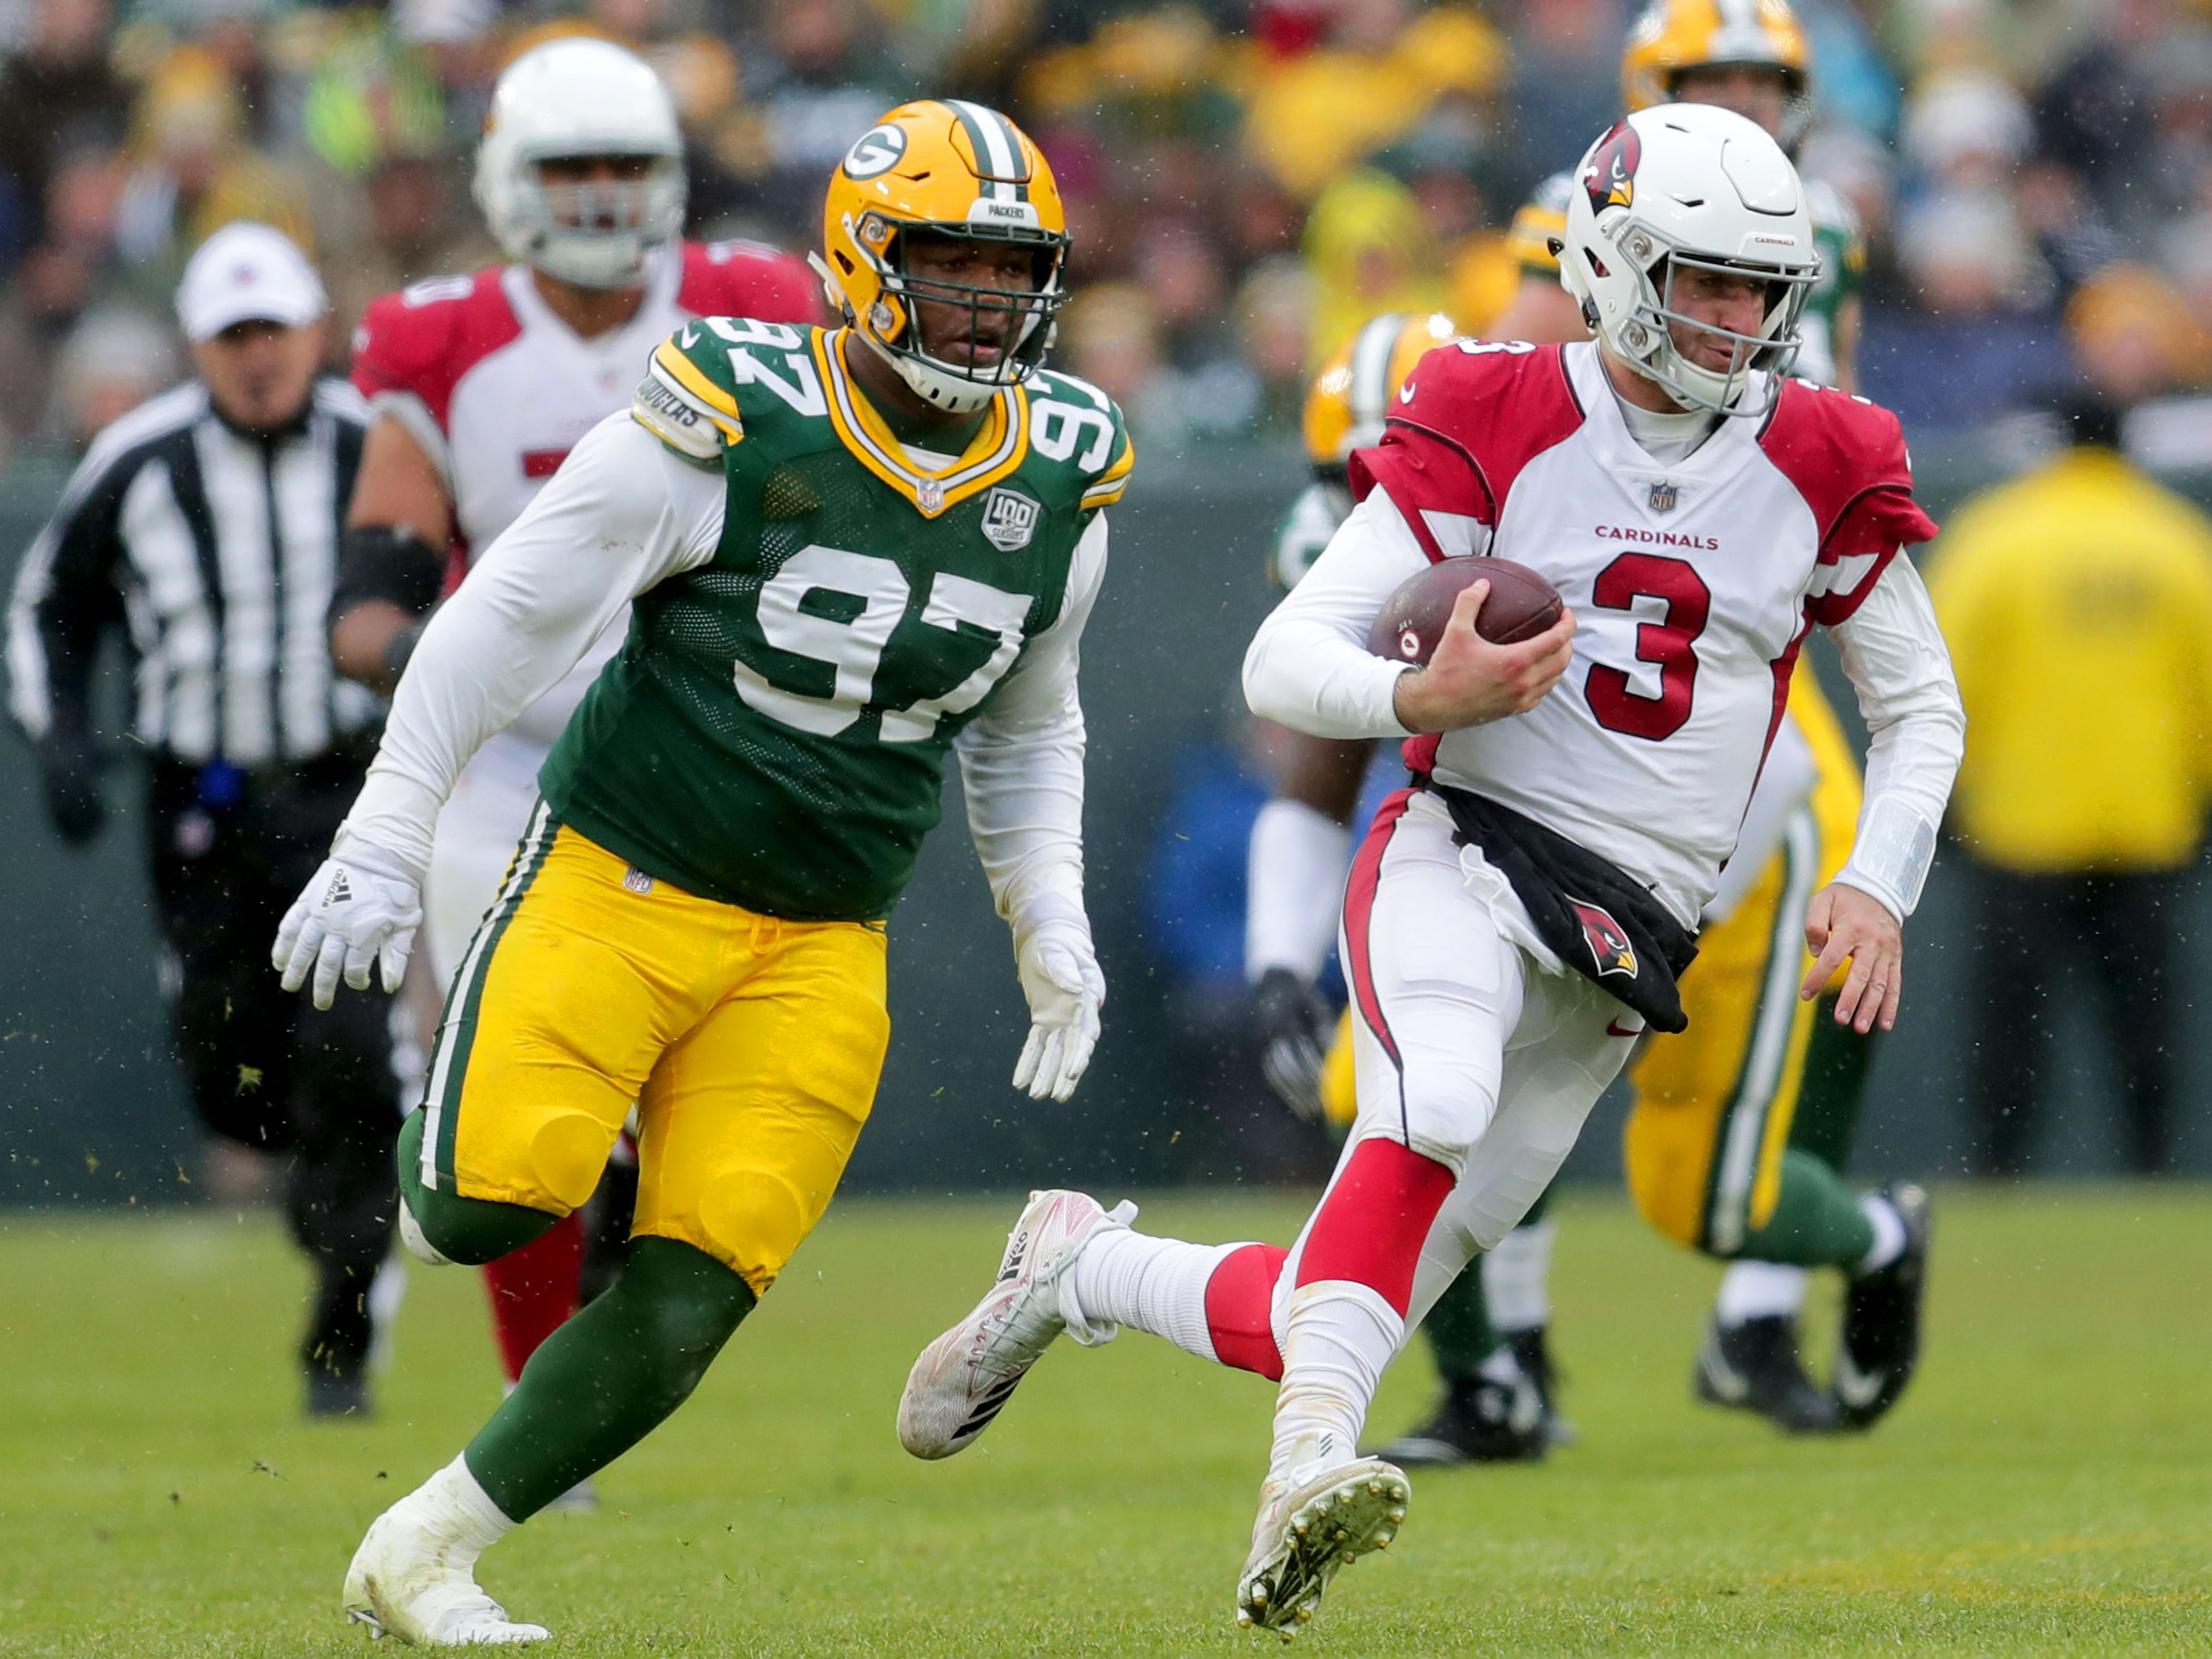 Arizona Cardinals quarterback Josh Rosen (3) runs for a long gain during the 3rd quarter of Green Bay Packers game 20-17 loss against the Arizona Cardinals on Sunday, December 2, 2018 at Lambeau Field in Green Bay, Wis. Mike De Sisti / USA TODAY NETWORK-Wis